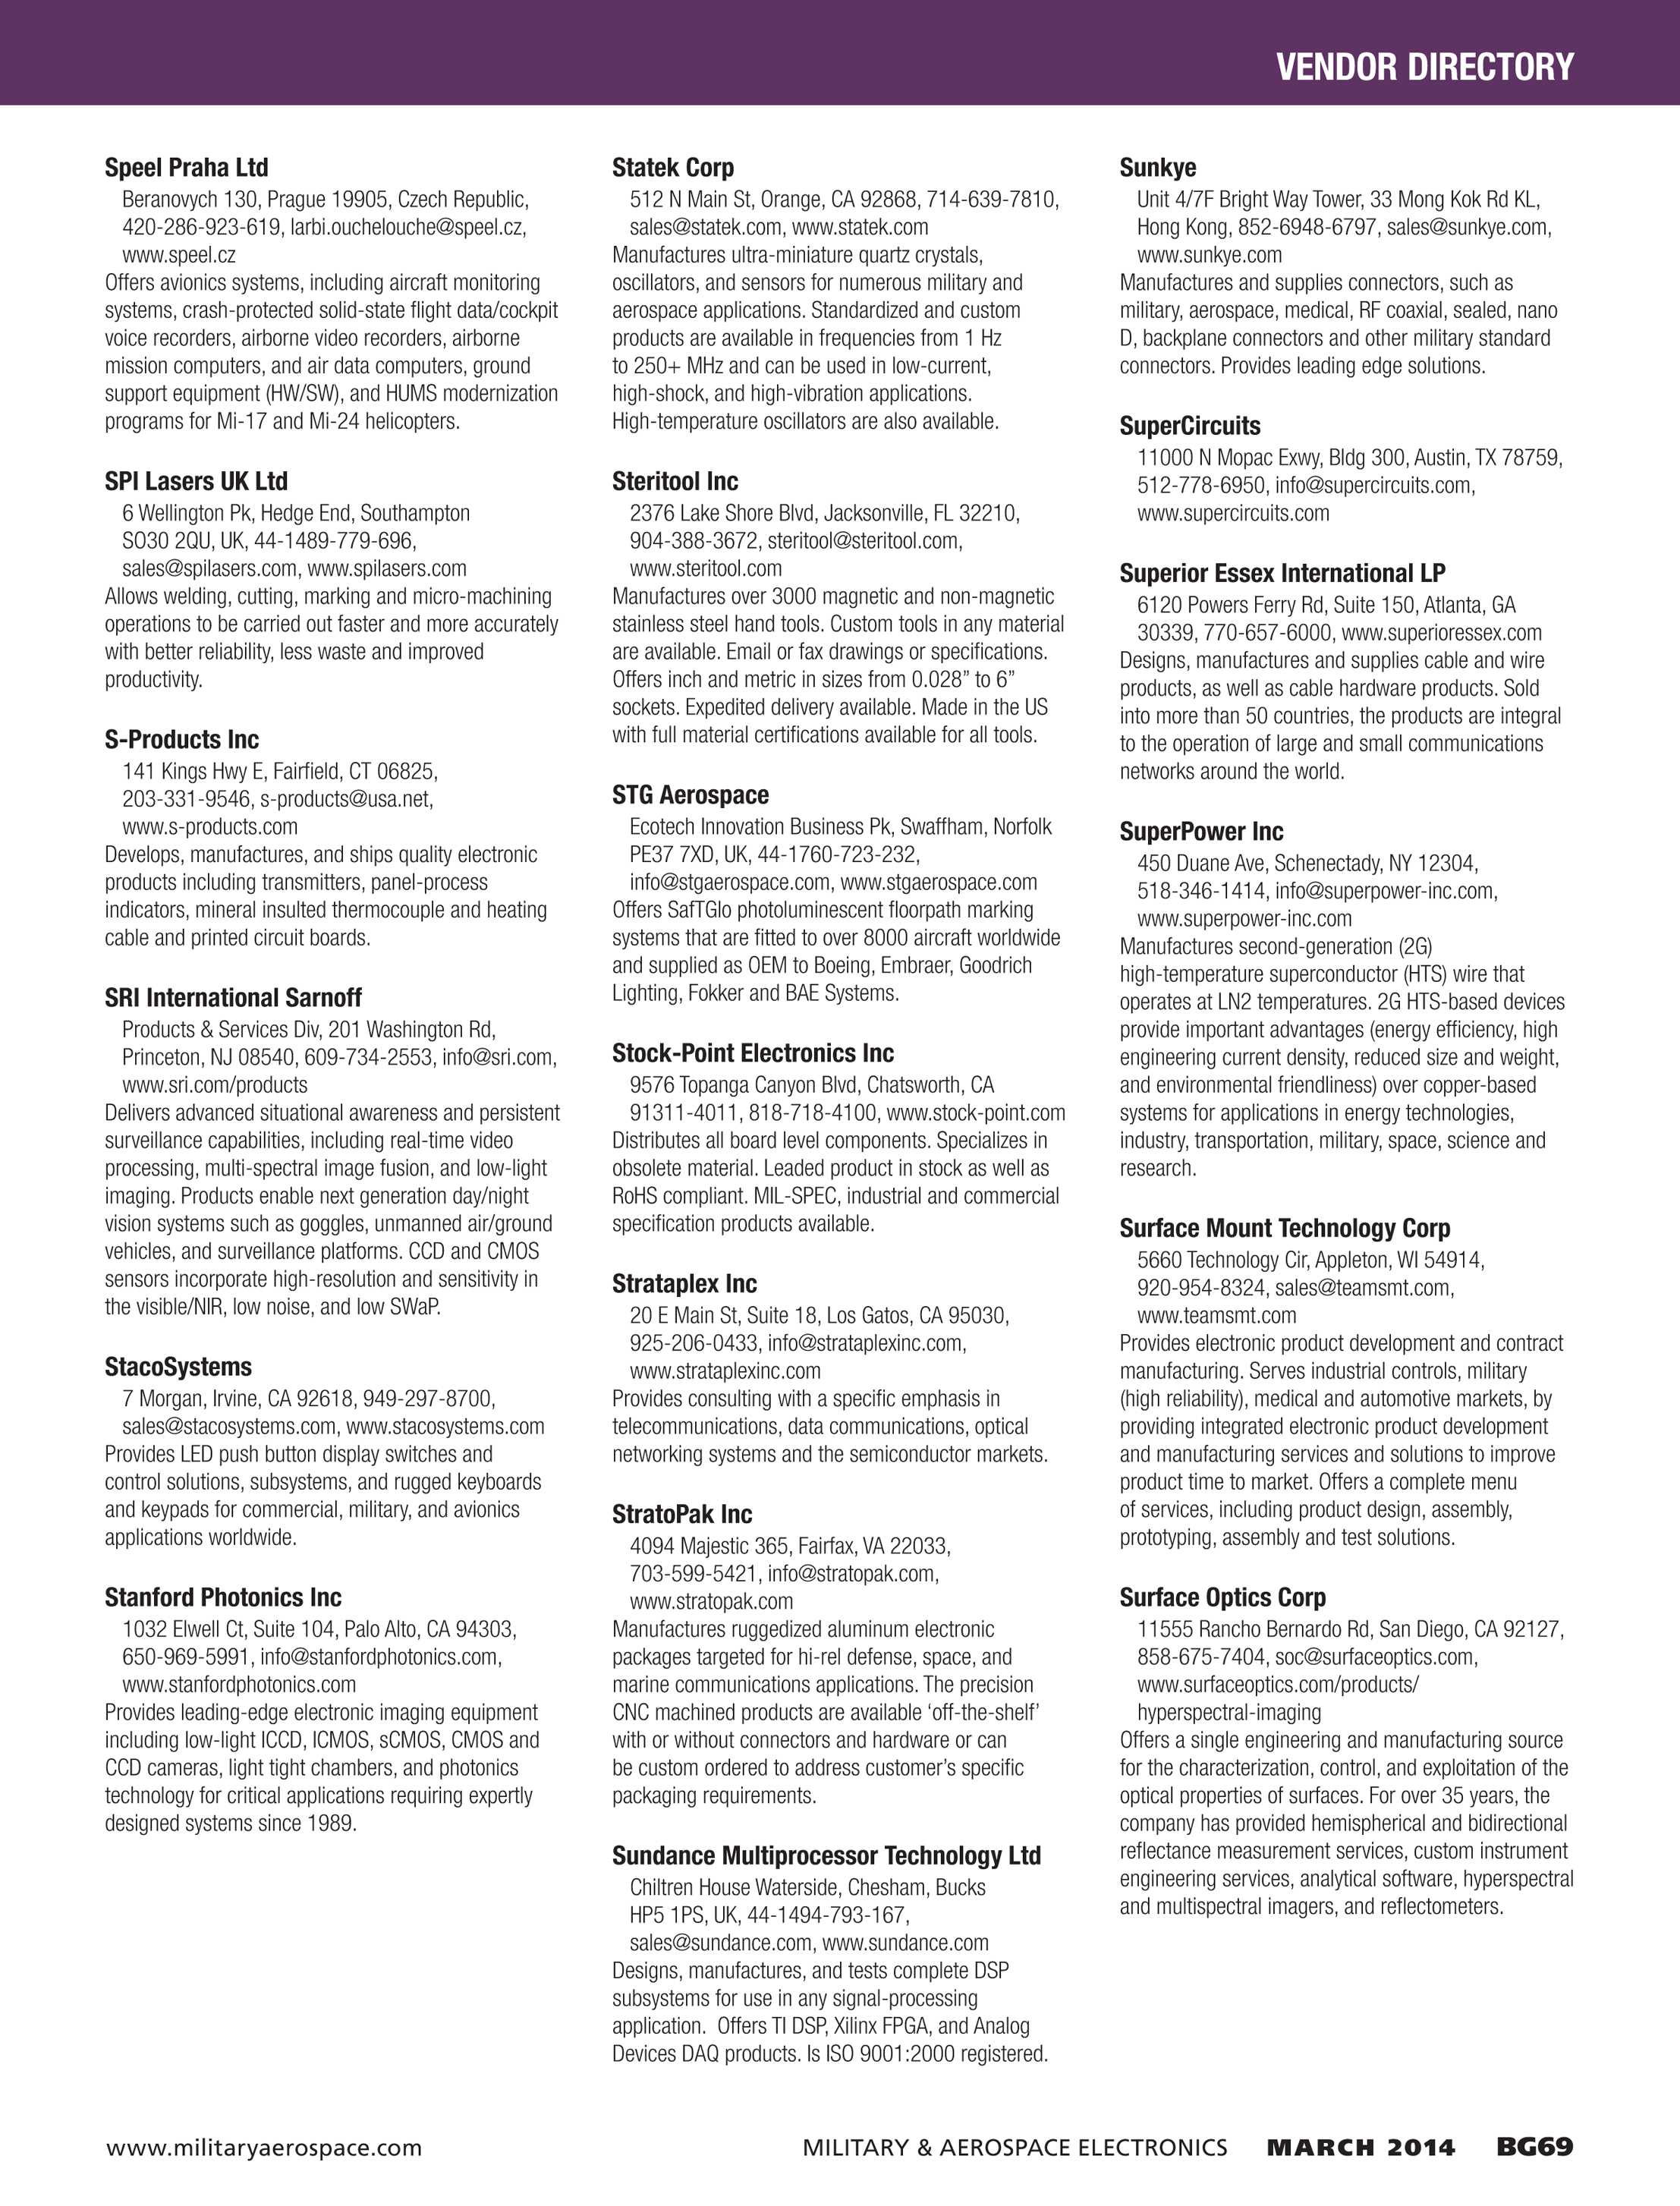 Military Aerospace Electronics Buyers Guide 2014 Page Bg69 How Are Printed Circuit Boards Made Image Search Results